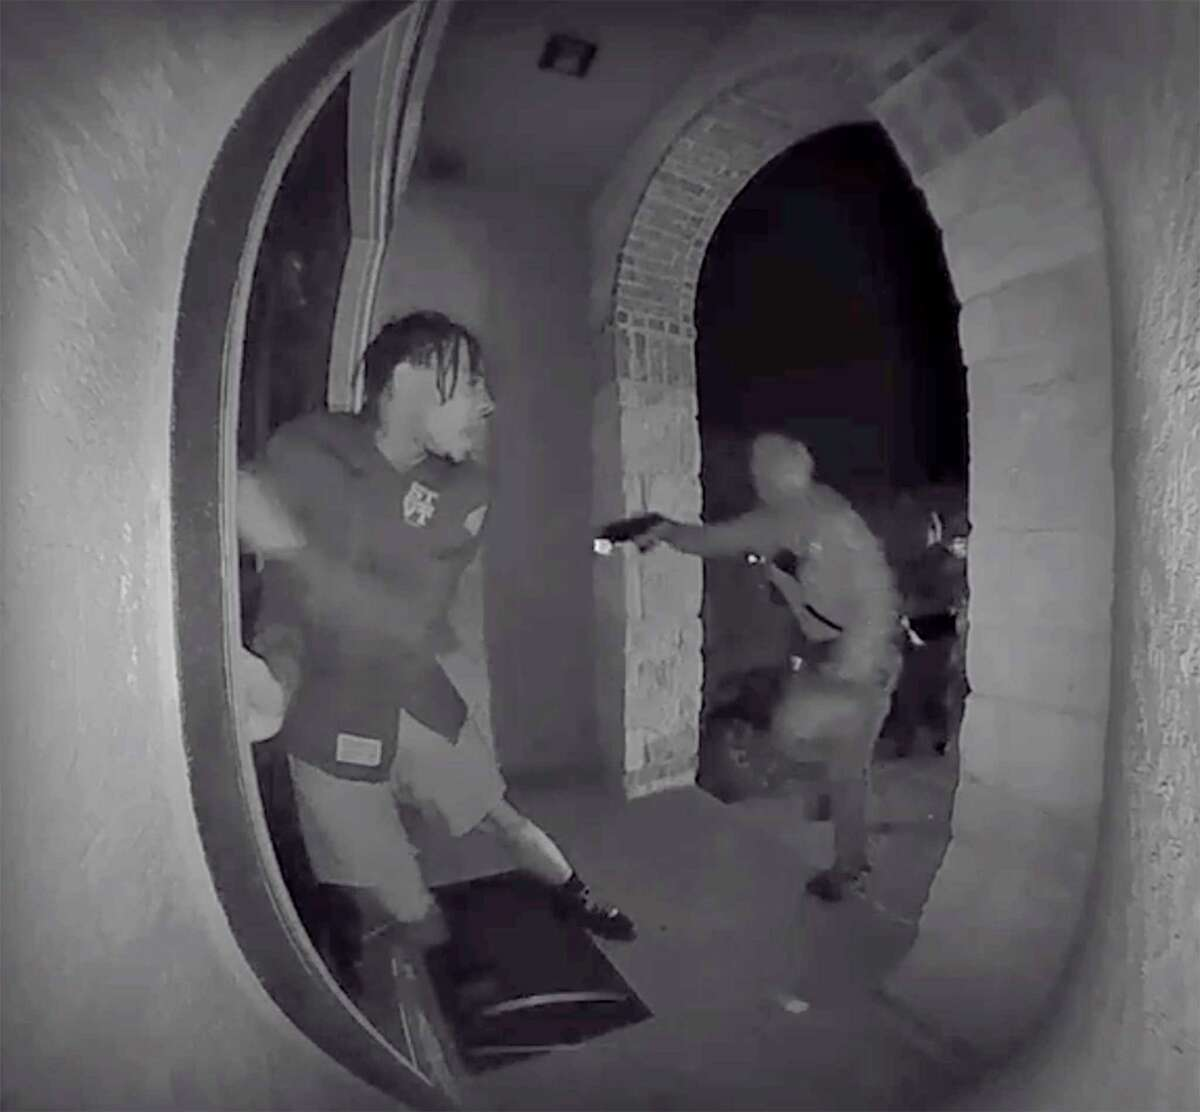 A screen grab from a home surveillance video shows one of three Schertz police officers pointing a weapon at Zekee Rayford, 18, on the front steps of his home.